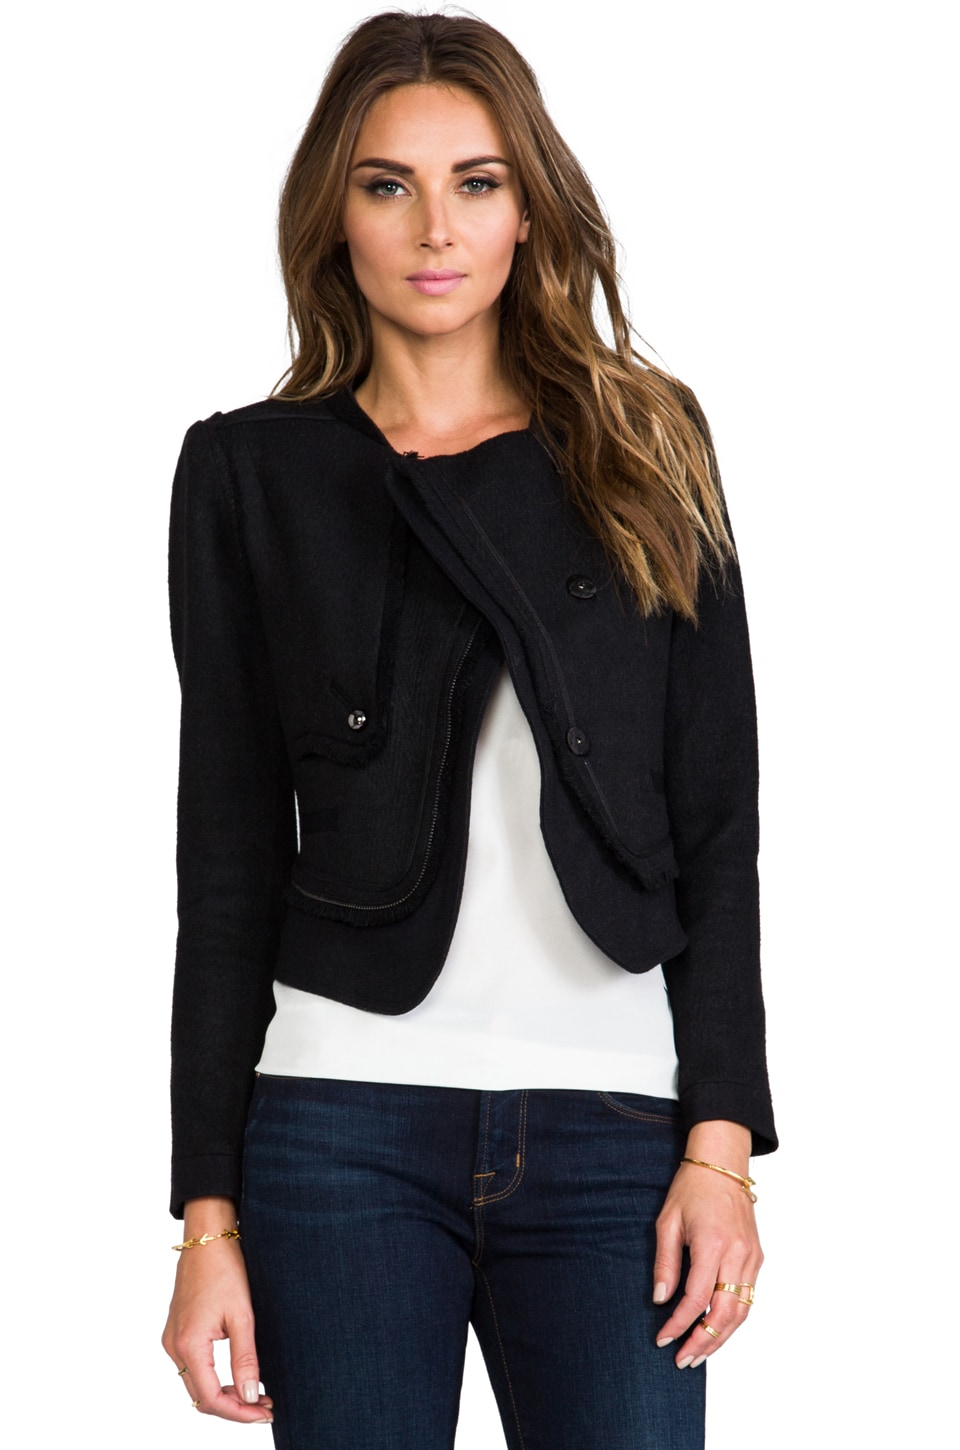 Greylin Samson Jacket in Black